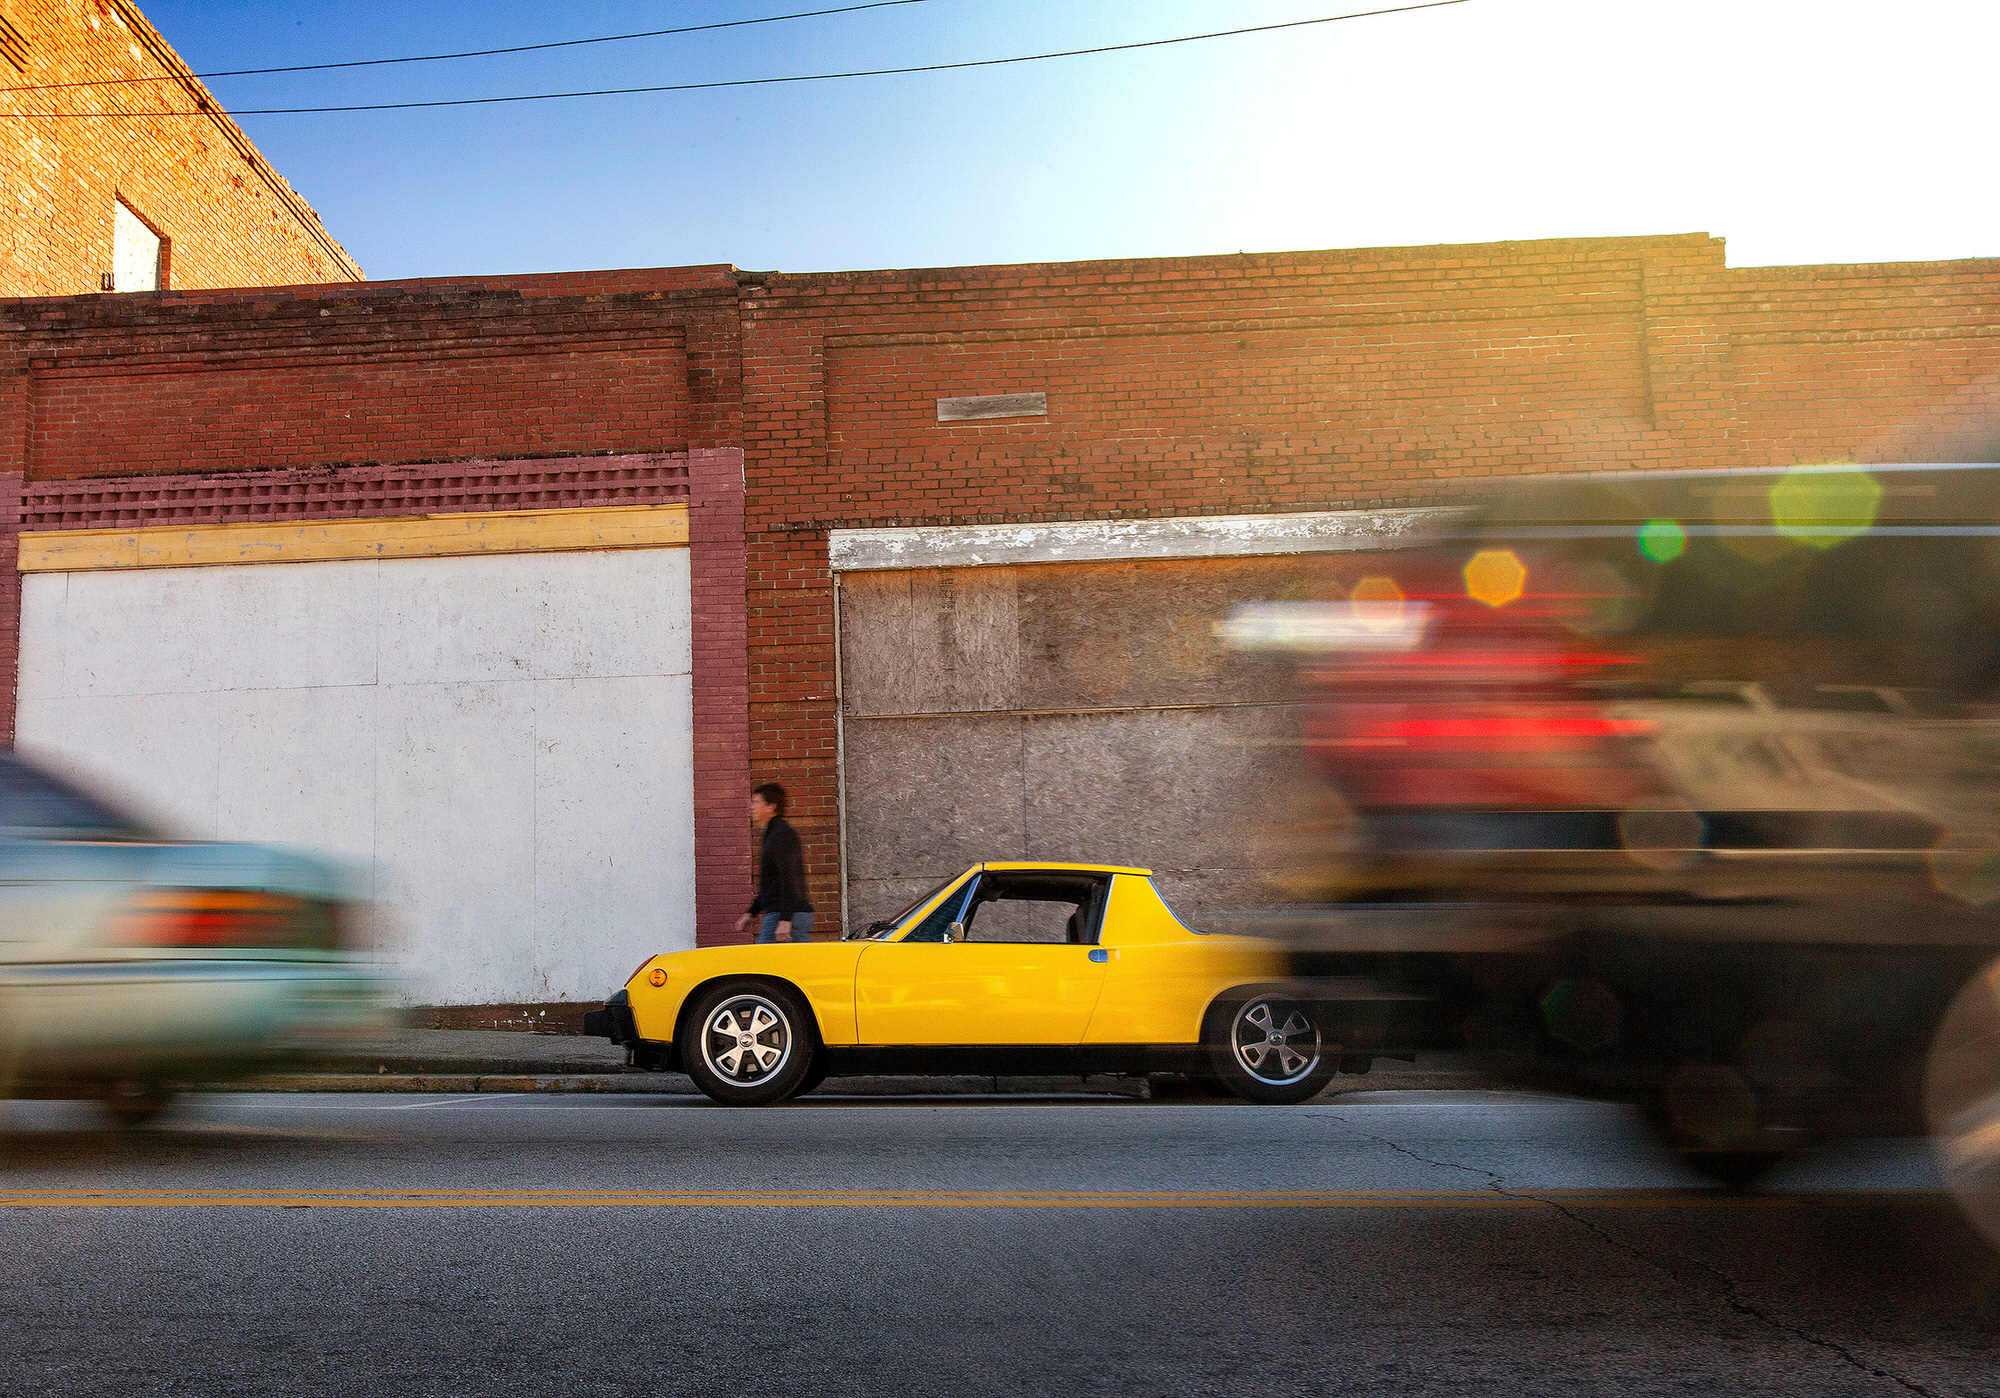 Sunflower Yellow 1974 Porsche 2.0 liter 914